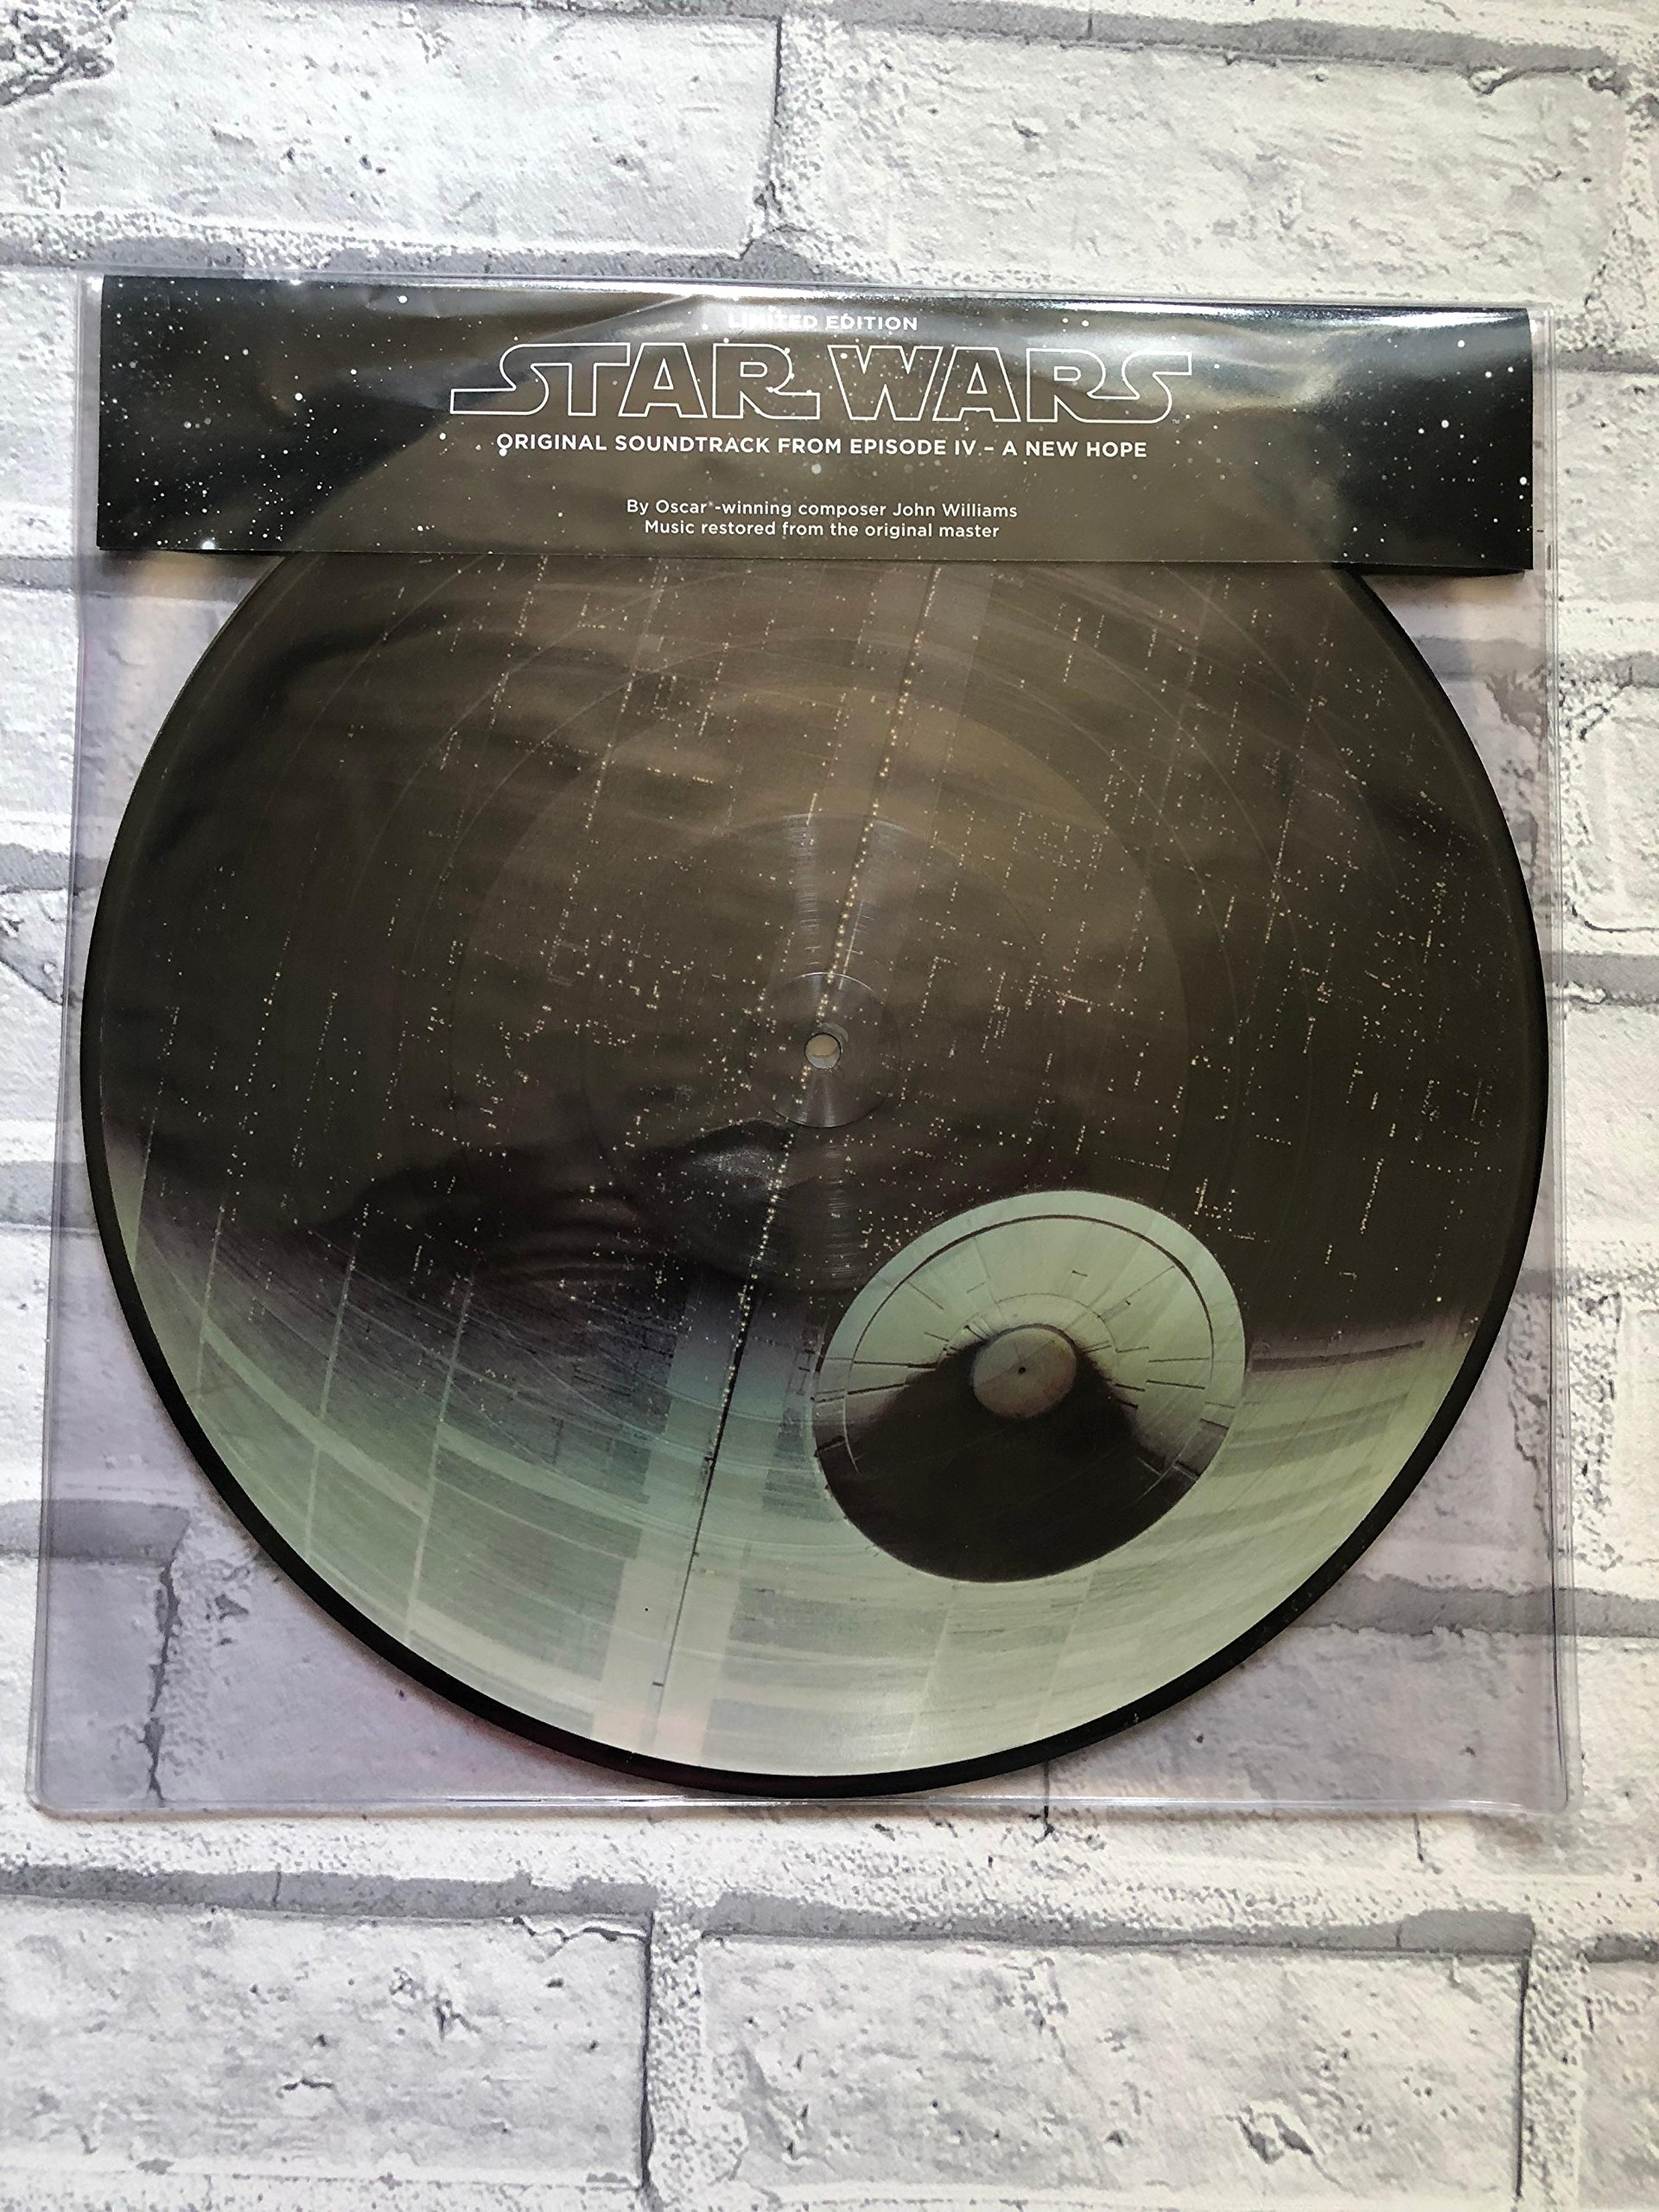 Star Wars Episode Iv A New Hope Original Soundtrack Buy Online In Cayman Islands John Williams Composer Products In Cayman Islands See Prices Reviews And Free Delivery Over Ci 60 Desertcart